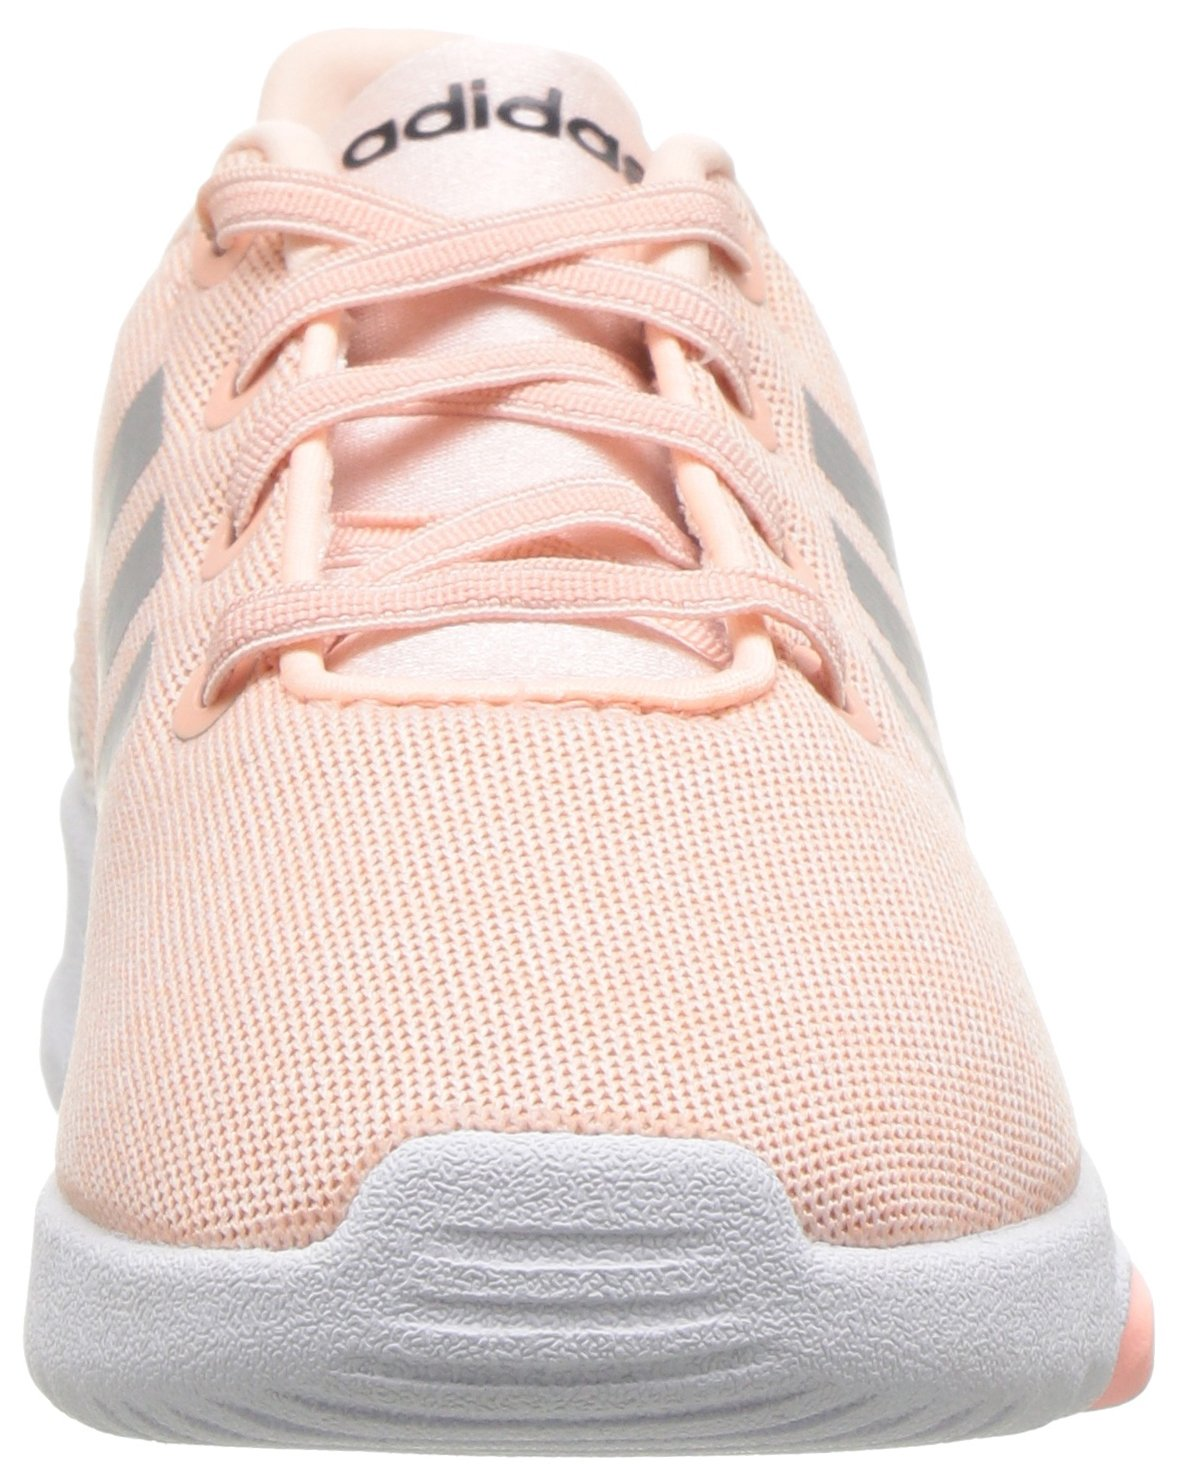 adidas Kids CF Racer TR Running Shoe, Haze Coral/Metallic Silver/White, 4K M US Toddler by adidas (Image #4)